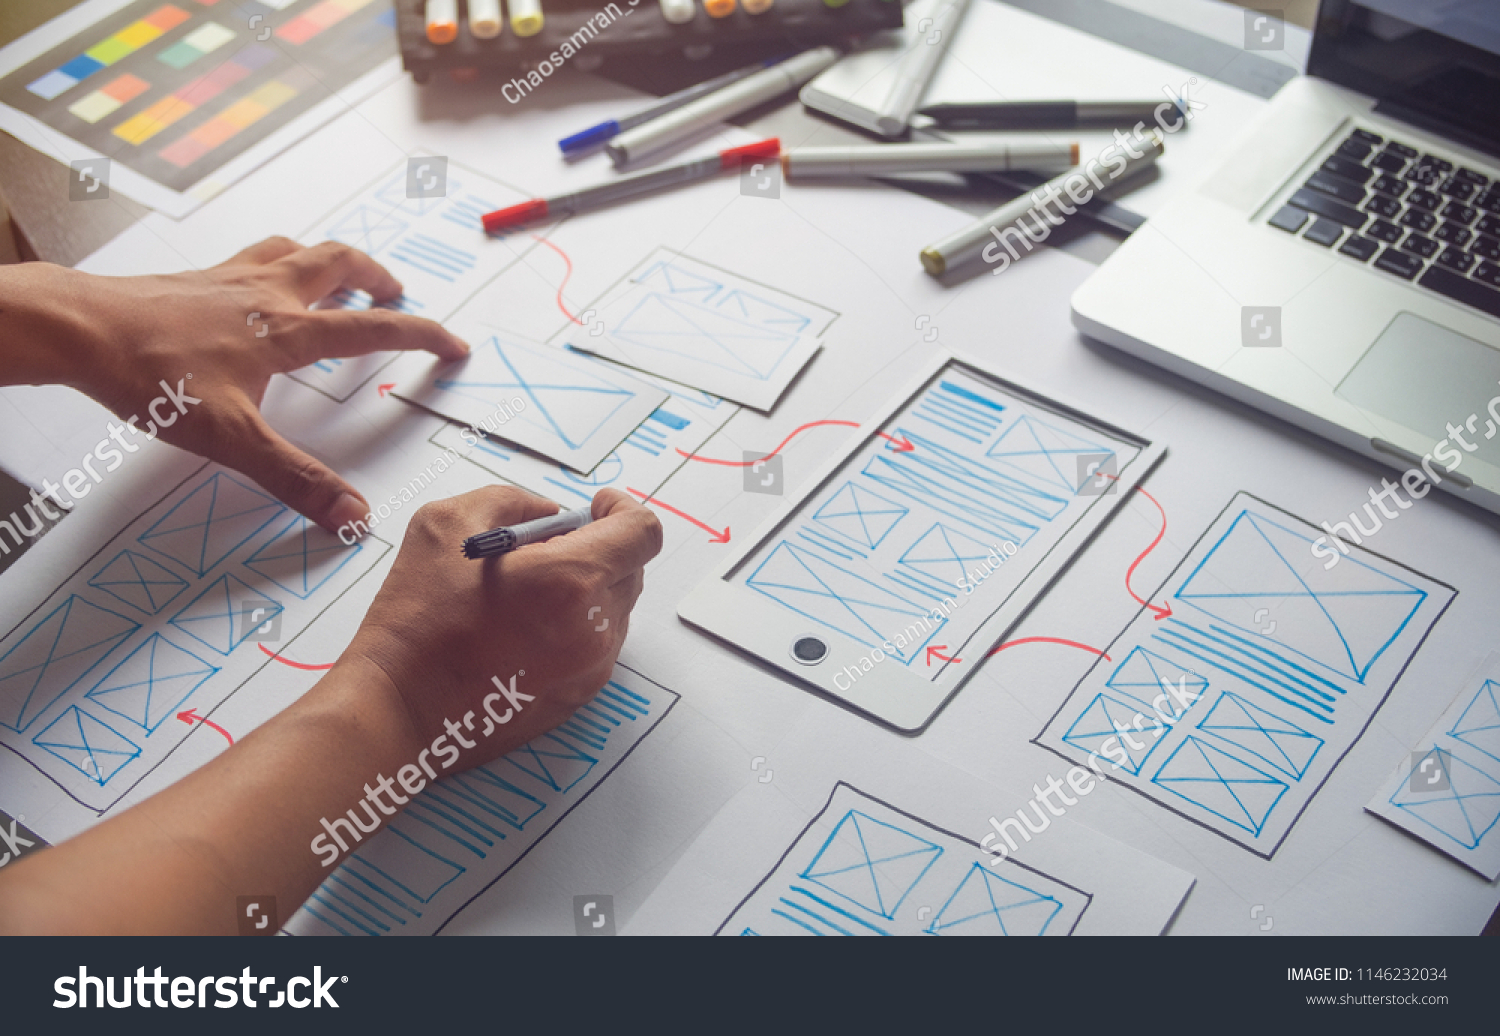 ux Graphic designer creative  sketch planning application process development prototype wireframe for web mobile phone . User experience concept. #1146232034